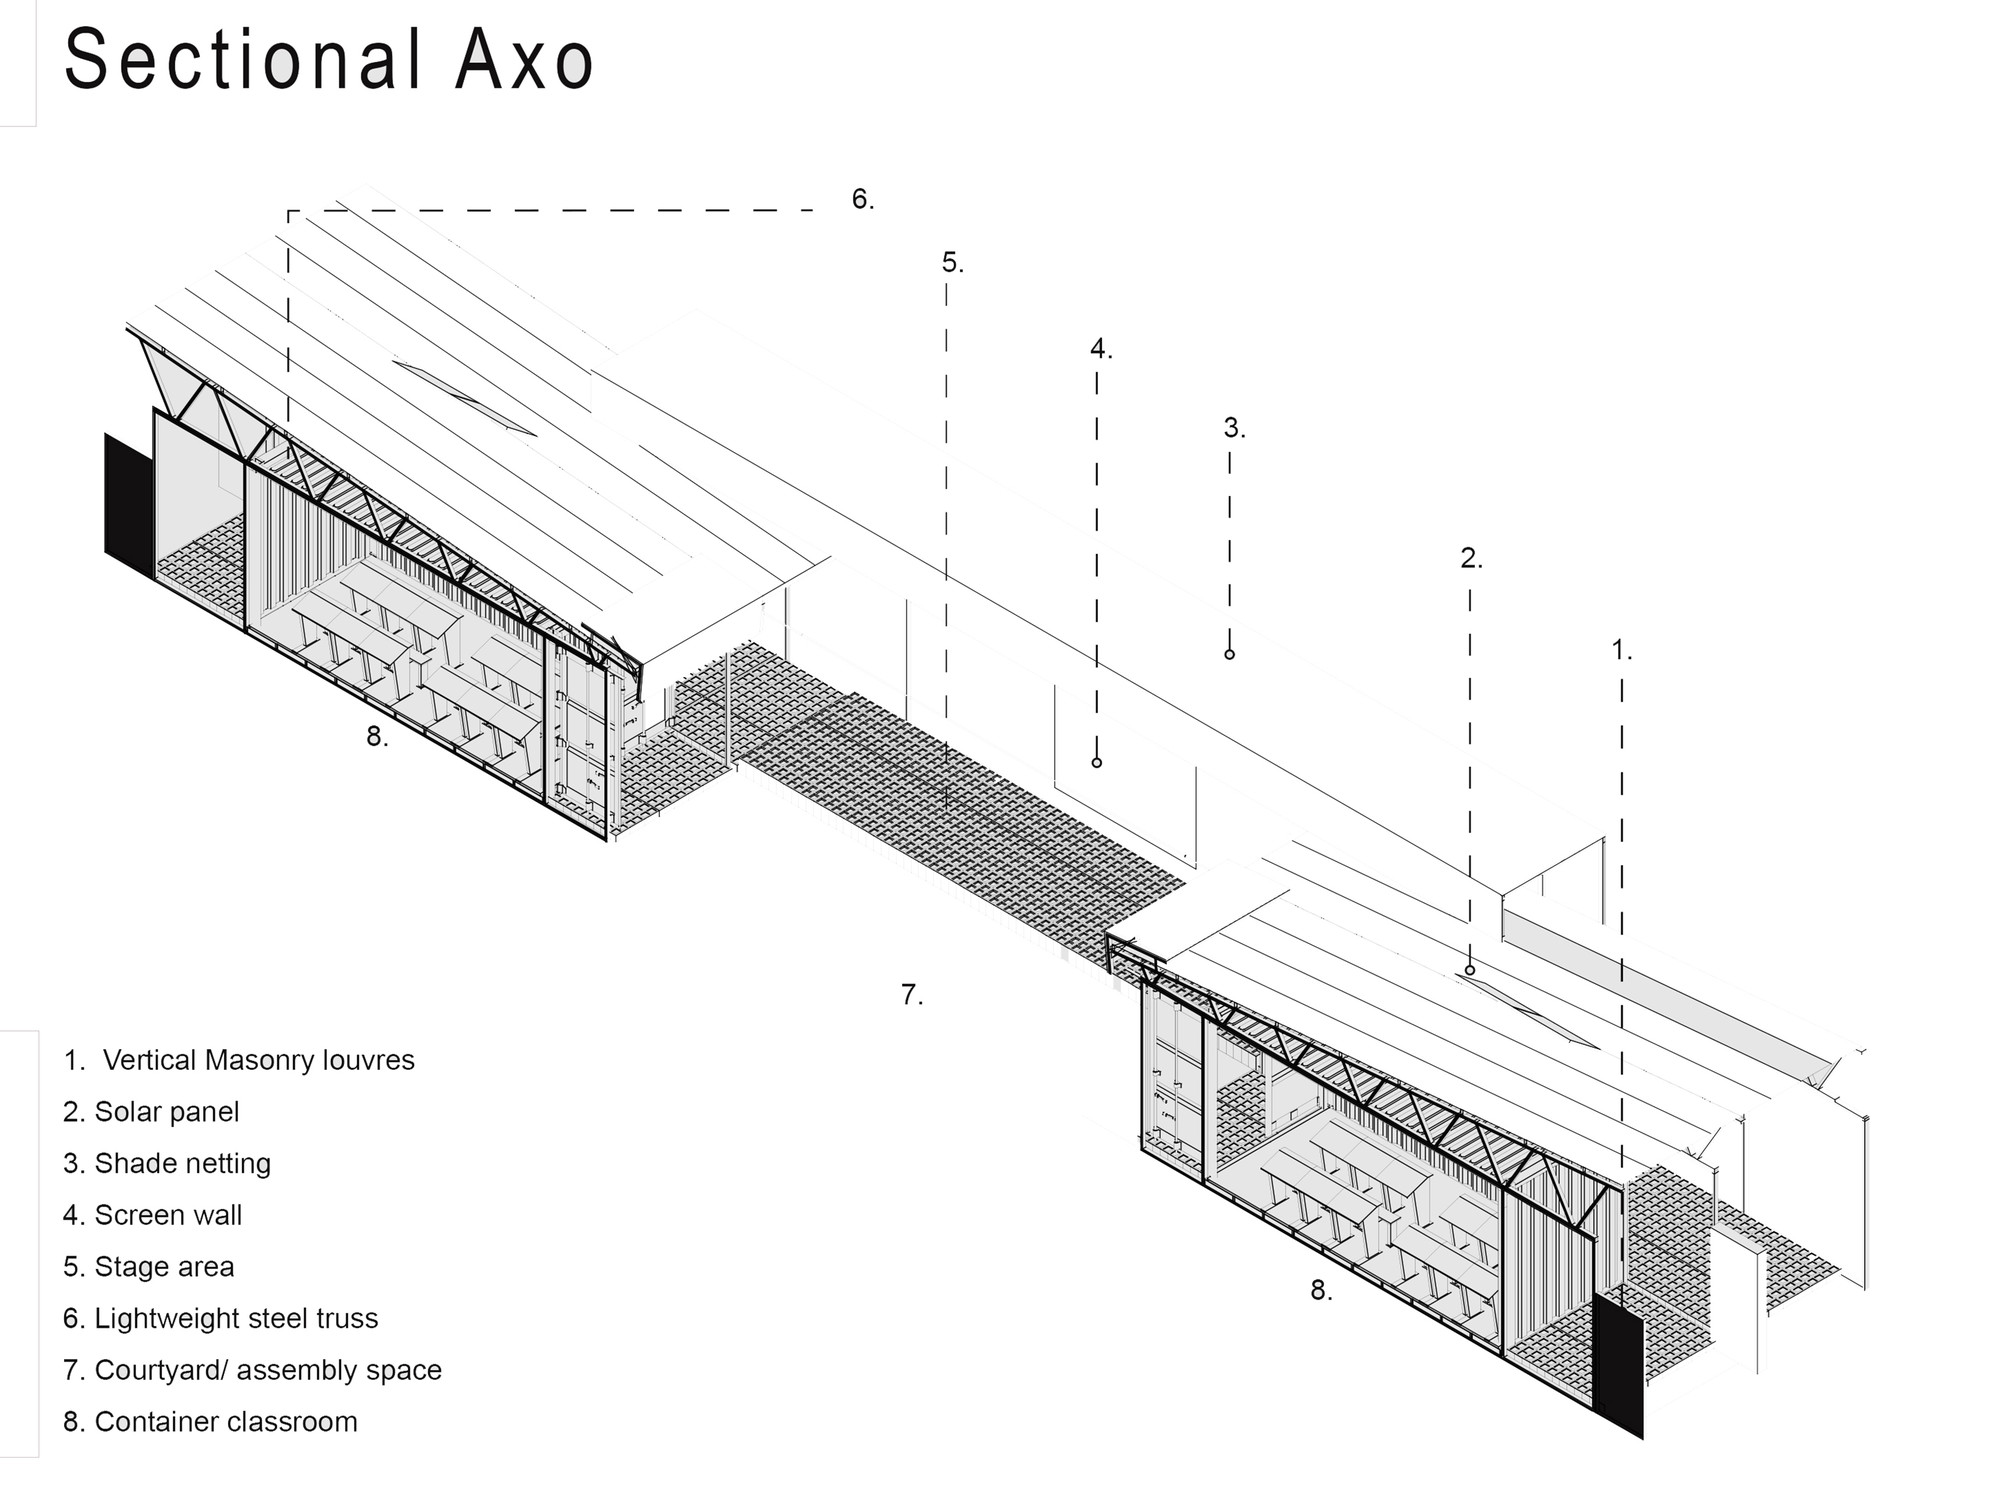 Axonometric Section